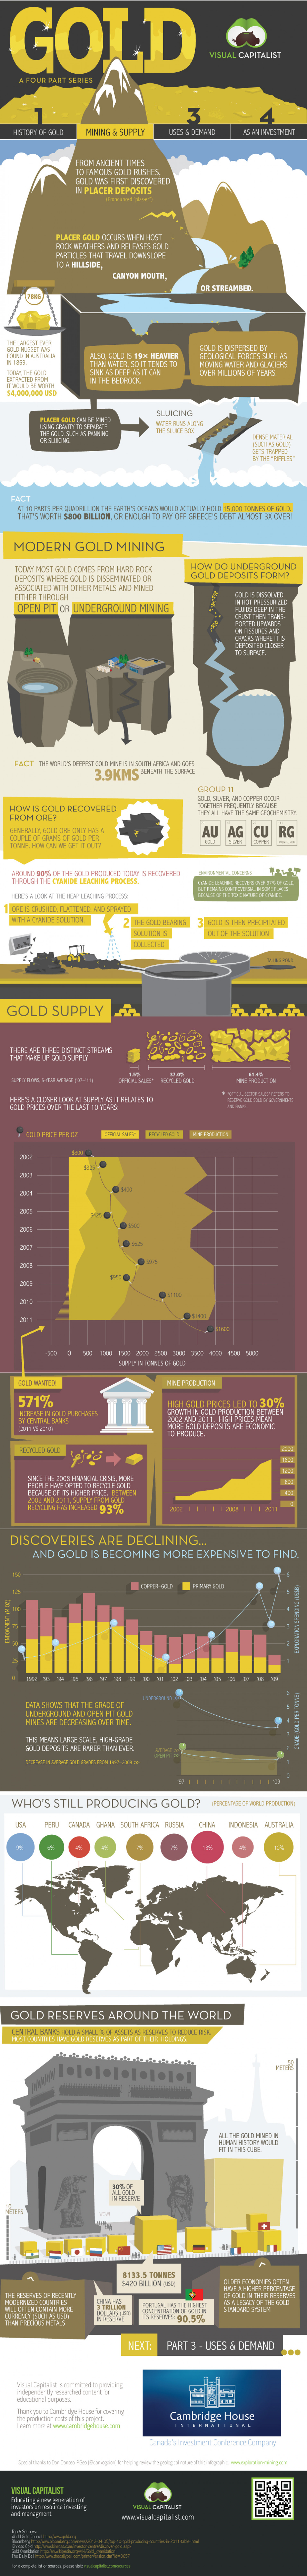 Gold mining supply Infographic